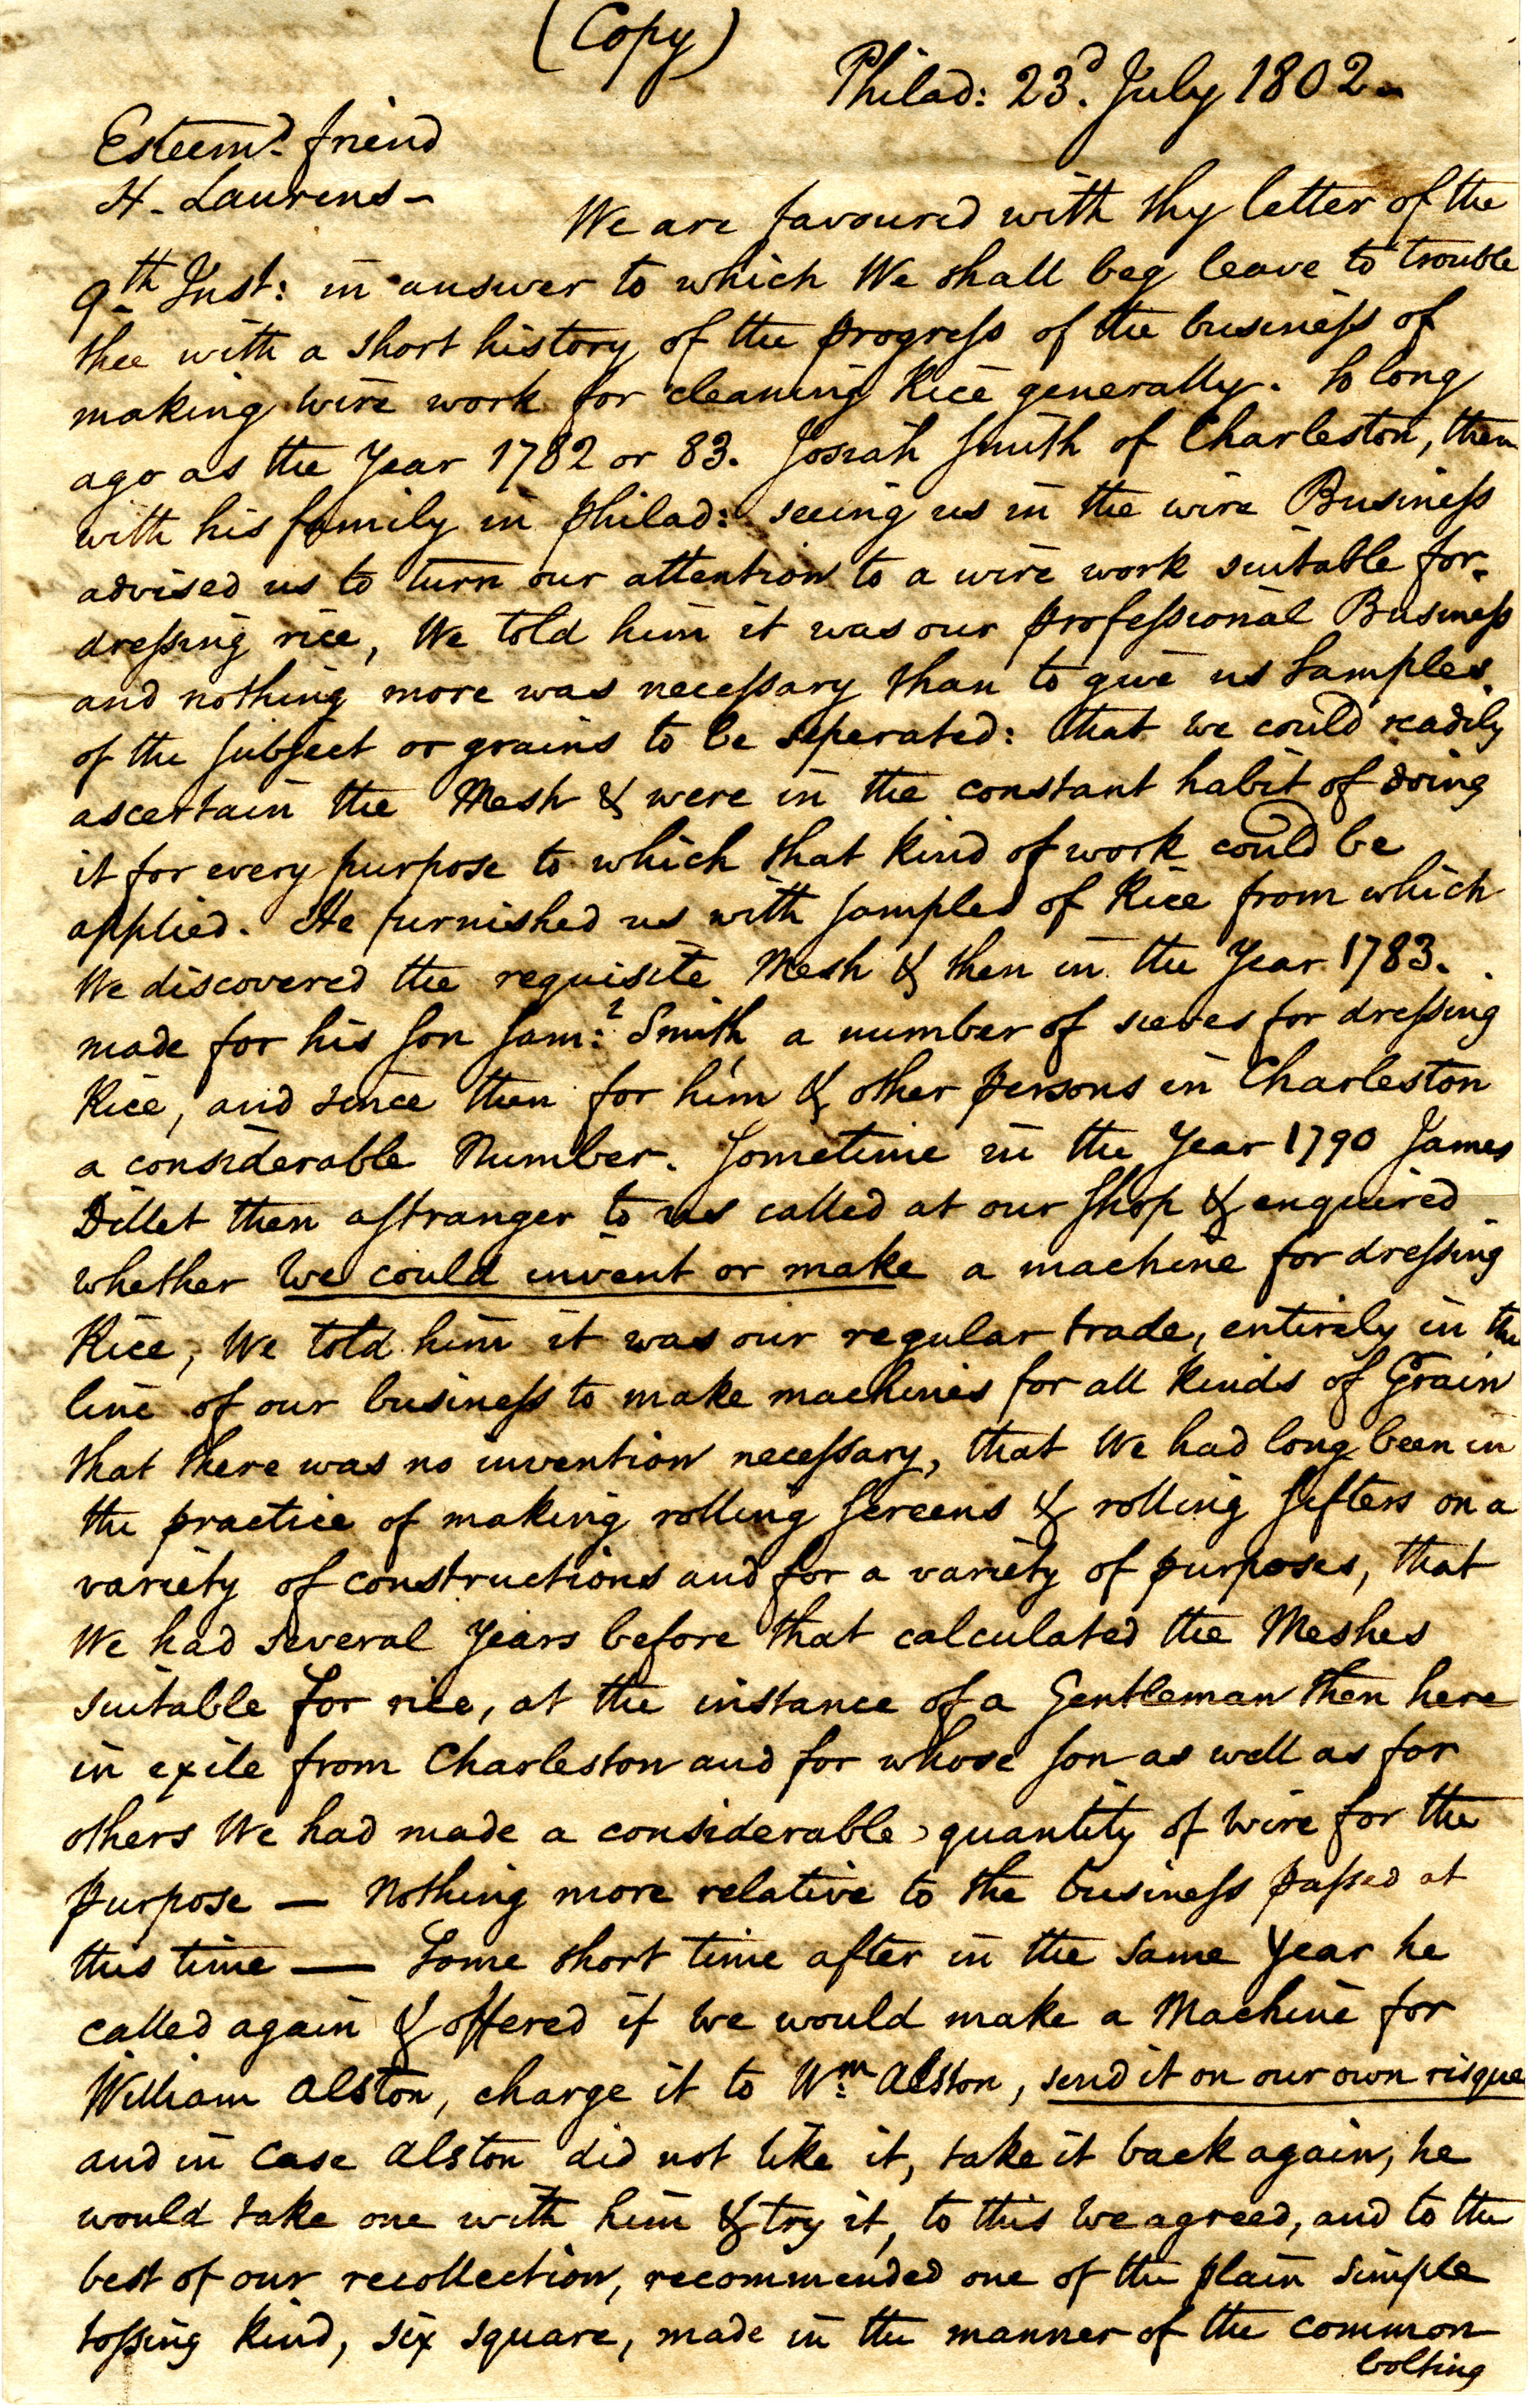 Letter from N[athan] and D[avid] Sellers (brothers) to Henry Laurens, Jr.